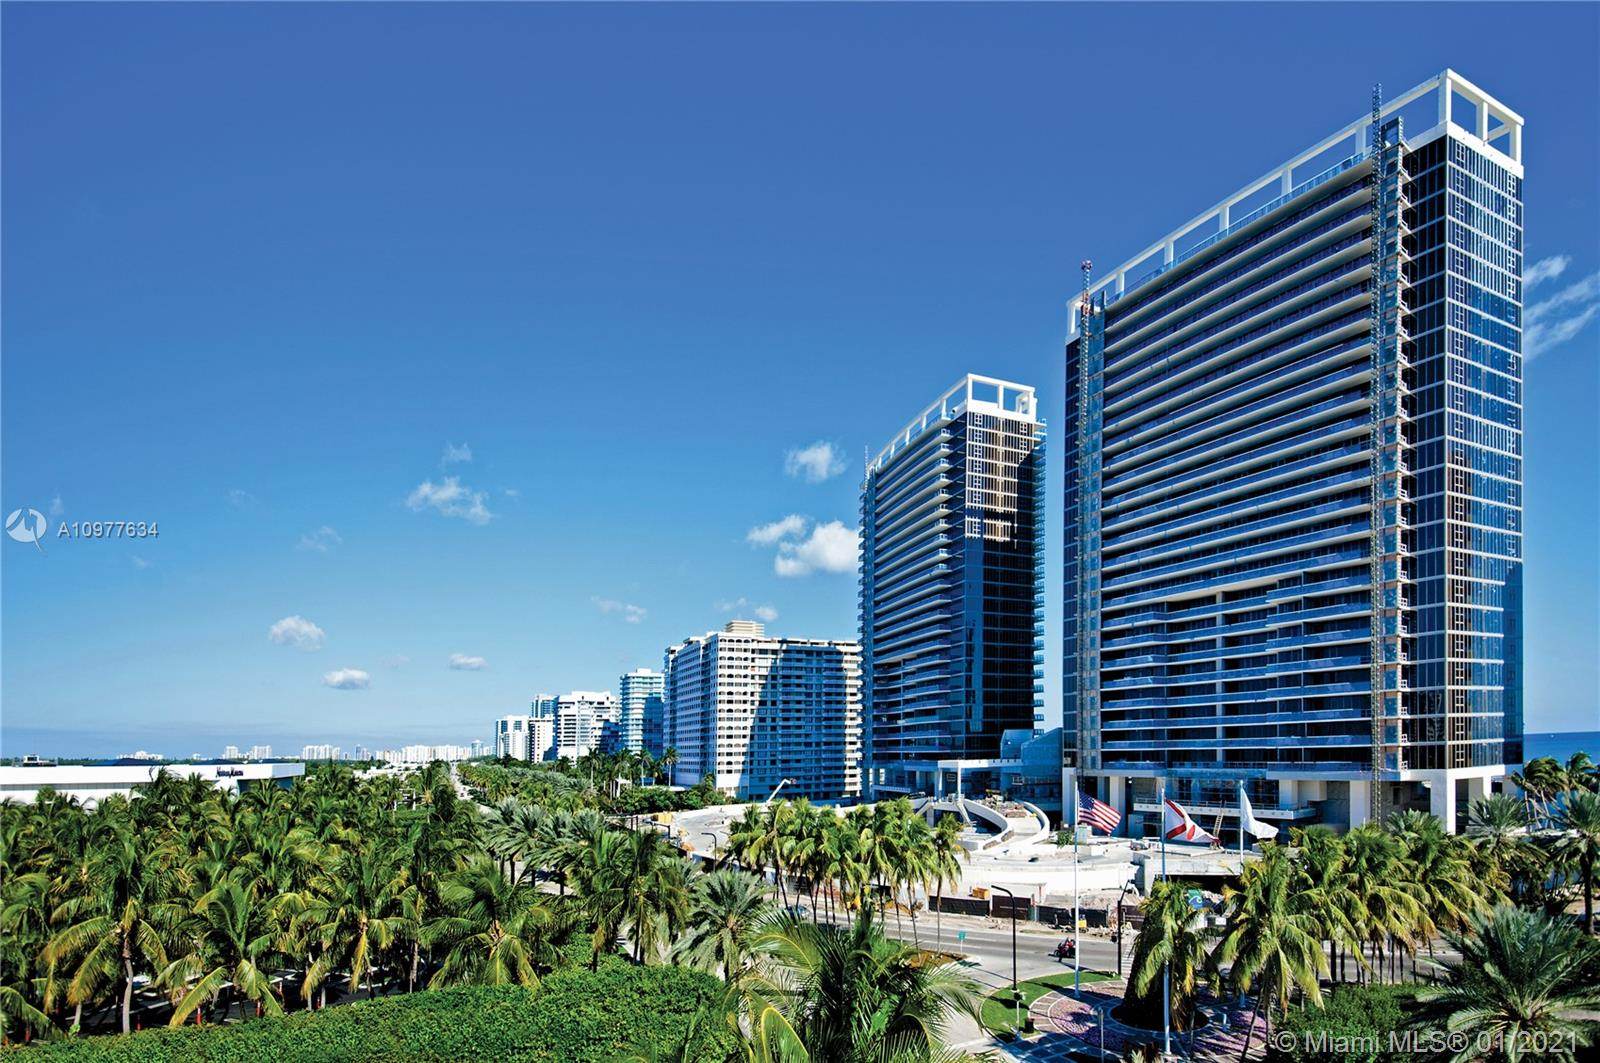 Welcome to an exceptional and extraordinary lifestyle experience with world class amenities at the one and only, ST REGIS-BAL HARBOUR, located right across from the famous Bal Harbour Shops. This marvelous 2bed/2.5baths residence in the sky, just shy of 1800 sqft of living area (as per developer's  floor plan attached) + one of kind oversize 455 sqft terrace, is offered turn-key, professionally decorated by HA Style for Living Design, with breathing and spectacular city and partial water views, luxurious finishes such as; beautiful marble floors, fabulous european-imported cabinetry and fixtures, motorized window treatments throughout, customized built-in closets, high-end electric and gas appliances such as a fantastic Thermador Gas stove. Ready for you!